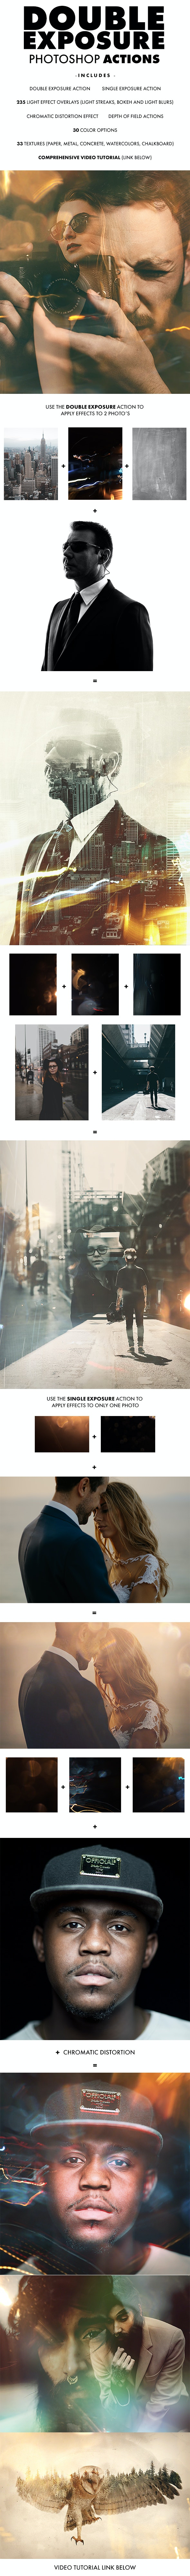 Double Exposure Photoshop Actions - Photo Effects Actions